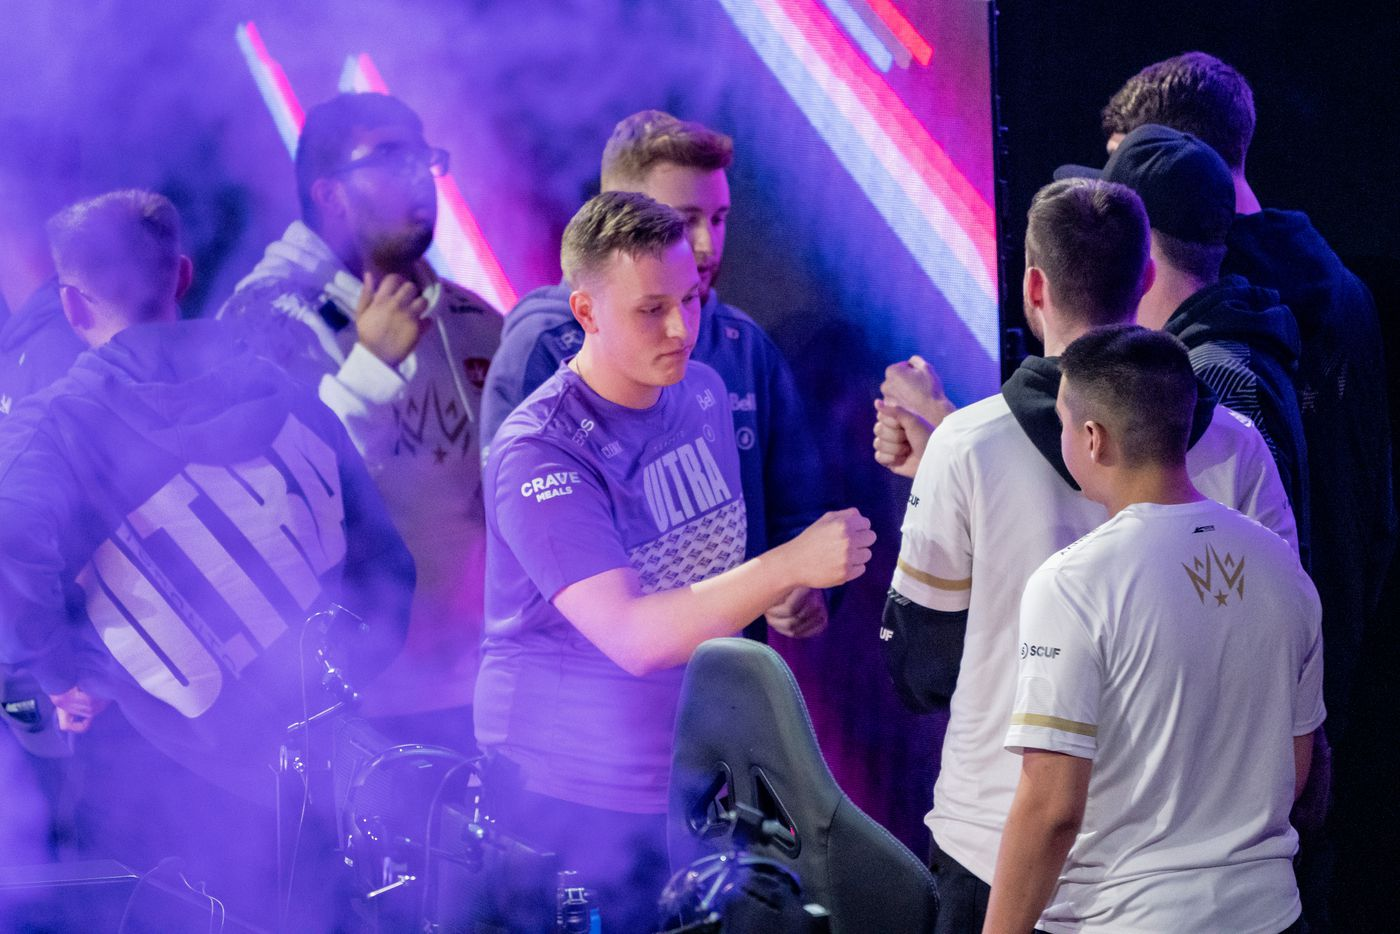 Members of the Dallas Empire bumps fists with members of the Toronto Ultra after the Empire's elimination from the  Call of Duty league playoffs at the Galen Center on Saturday, August 21, 2021 in Los Angeles, California. The Empire lost to Ultra 2 - 3, eliminating them from the tournament. (Justin L. Stewart/Special Contributor)